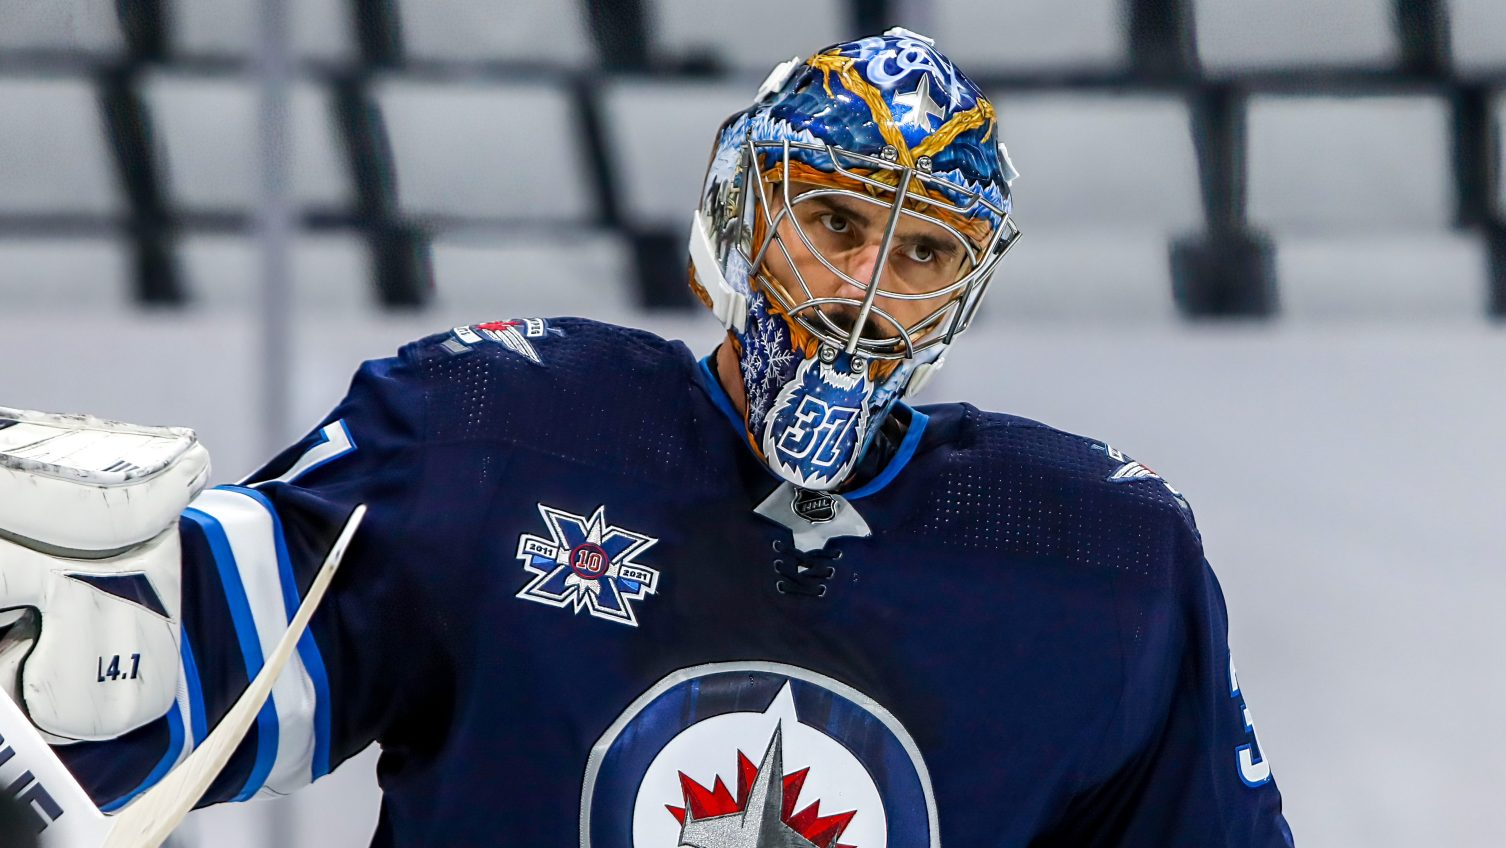 Jets give Hellebuyck support with defense upgrades